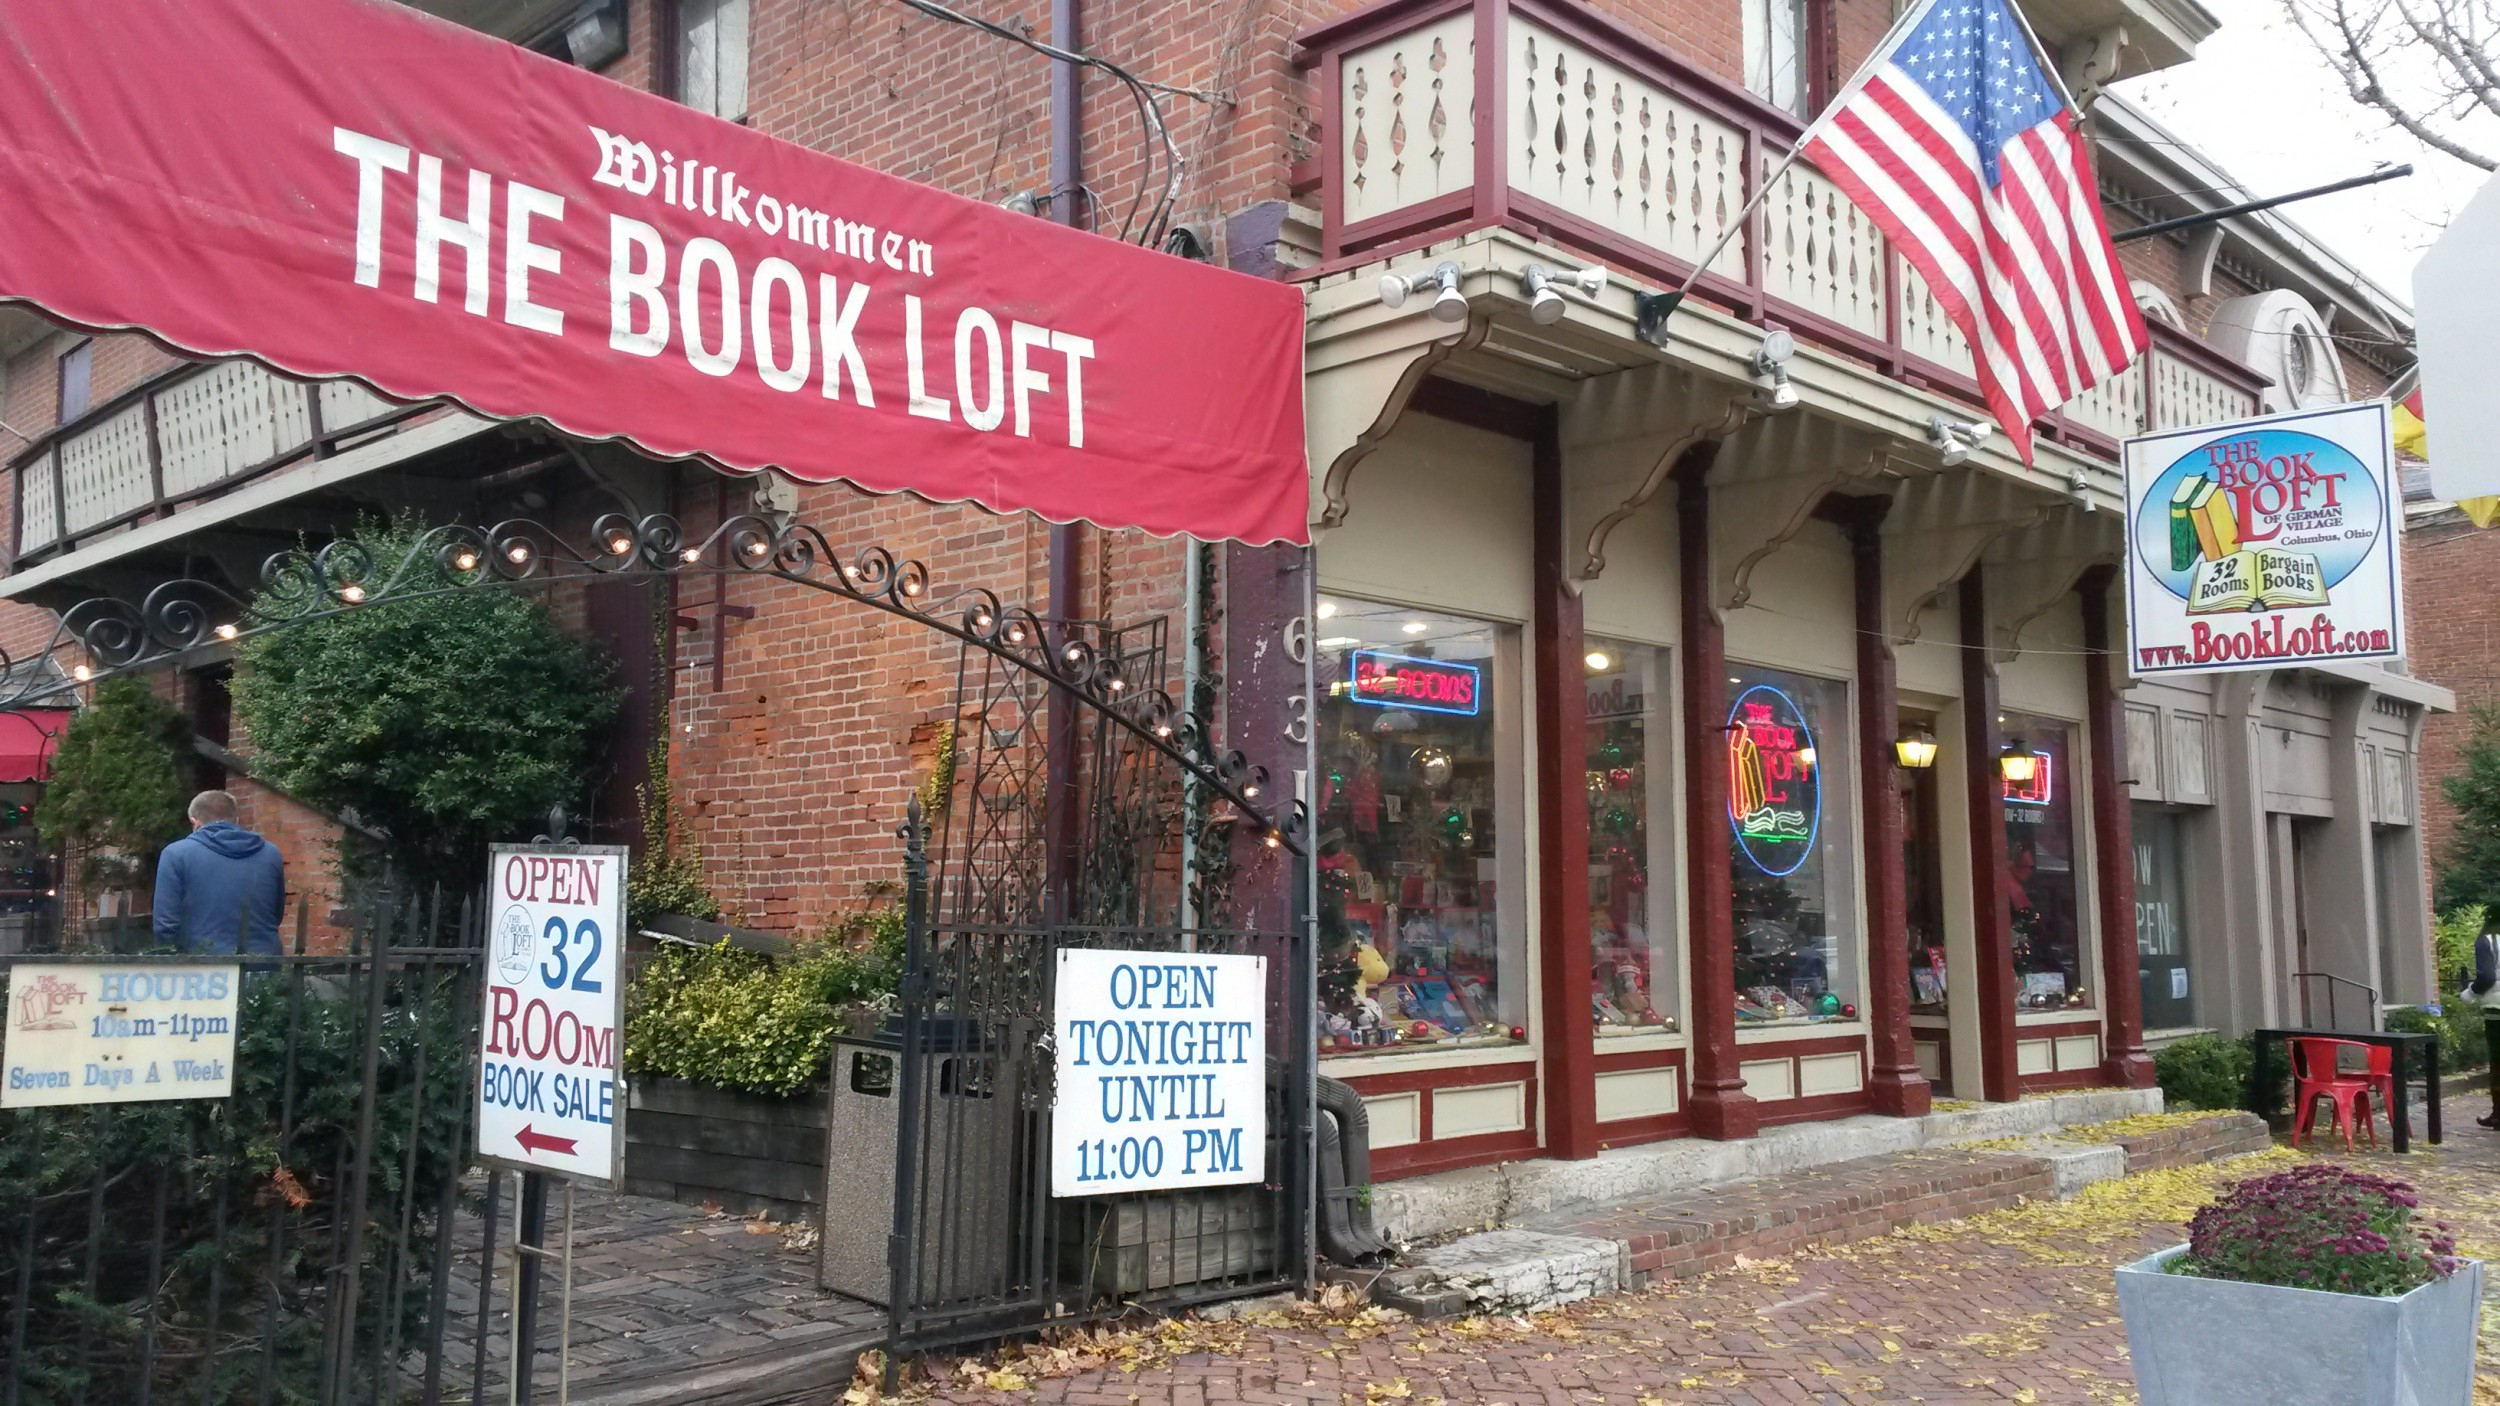 A bookshop in Ohio, America called the Book Loft.